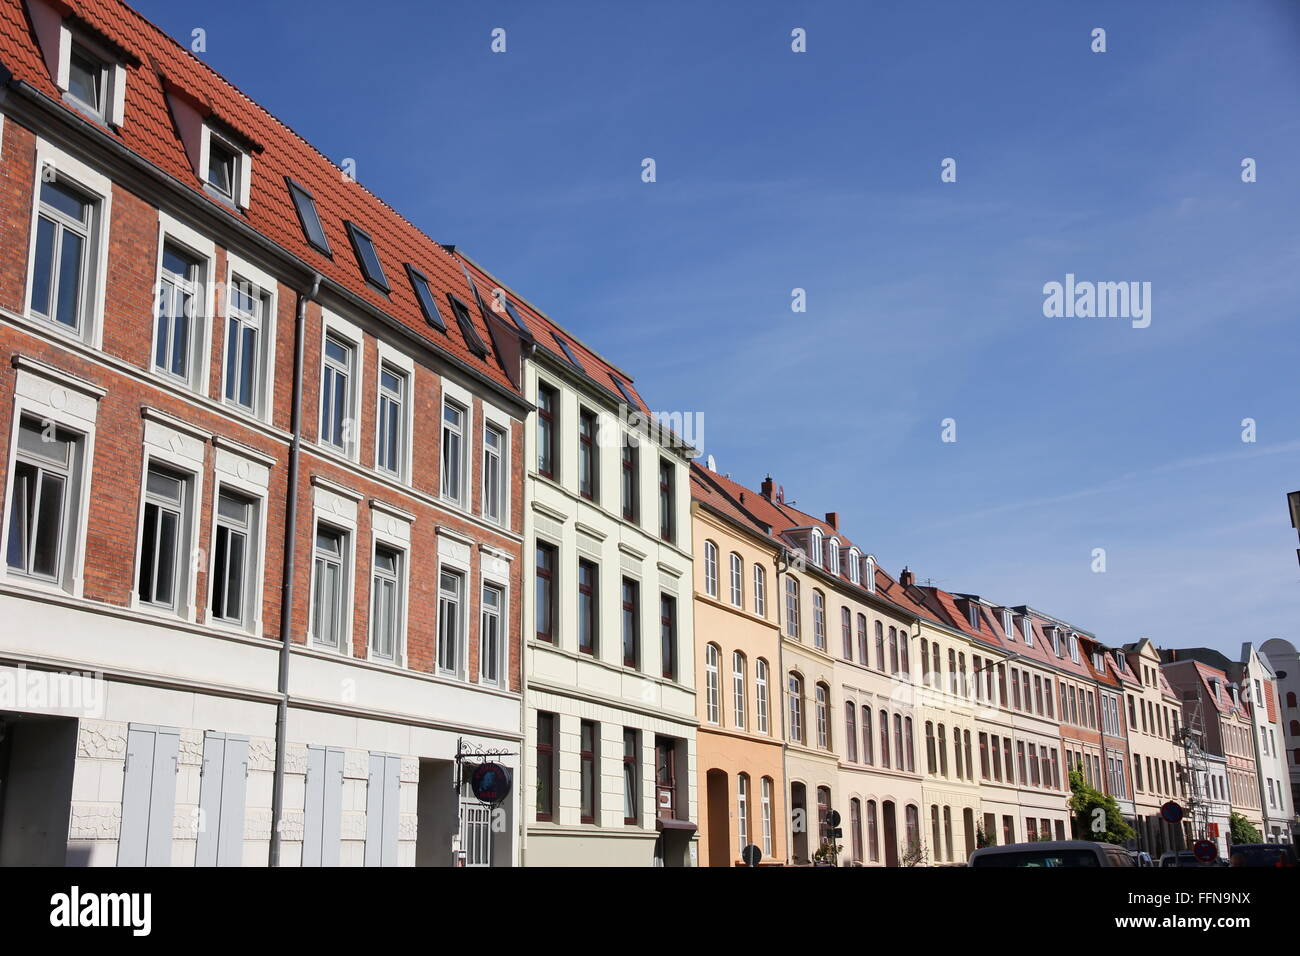 geography / travel, Germany, Mecklenburg-West Pomerania, Wismar, Spiegelberg, Additional-Rights-Clearance-Info-Not - Stock Image